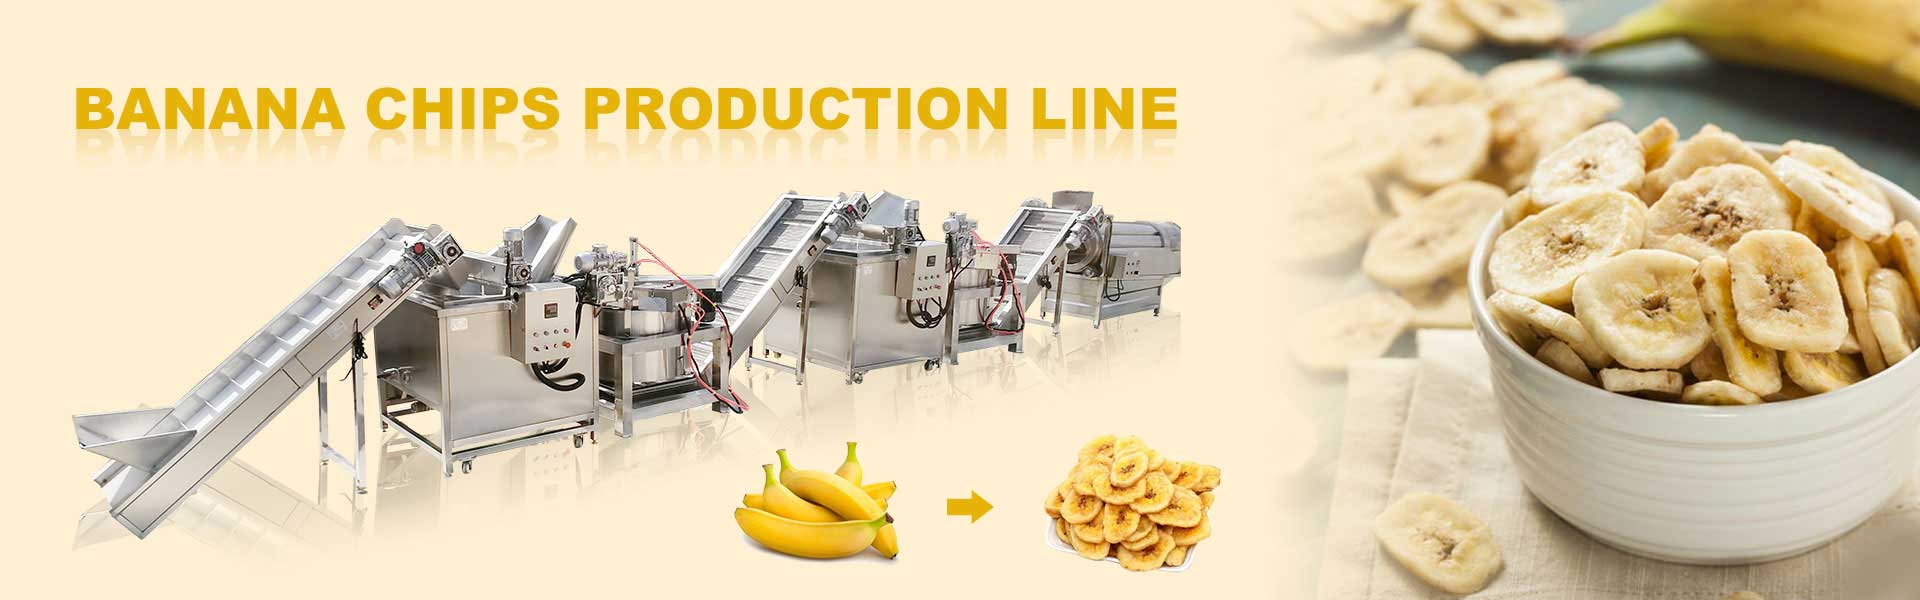 banana and plantain chips plant